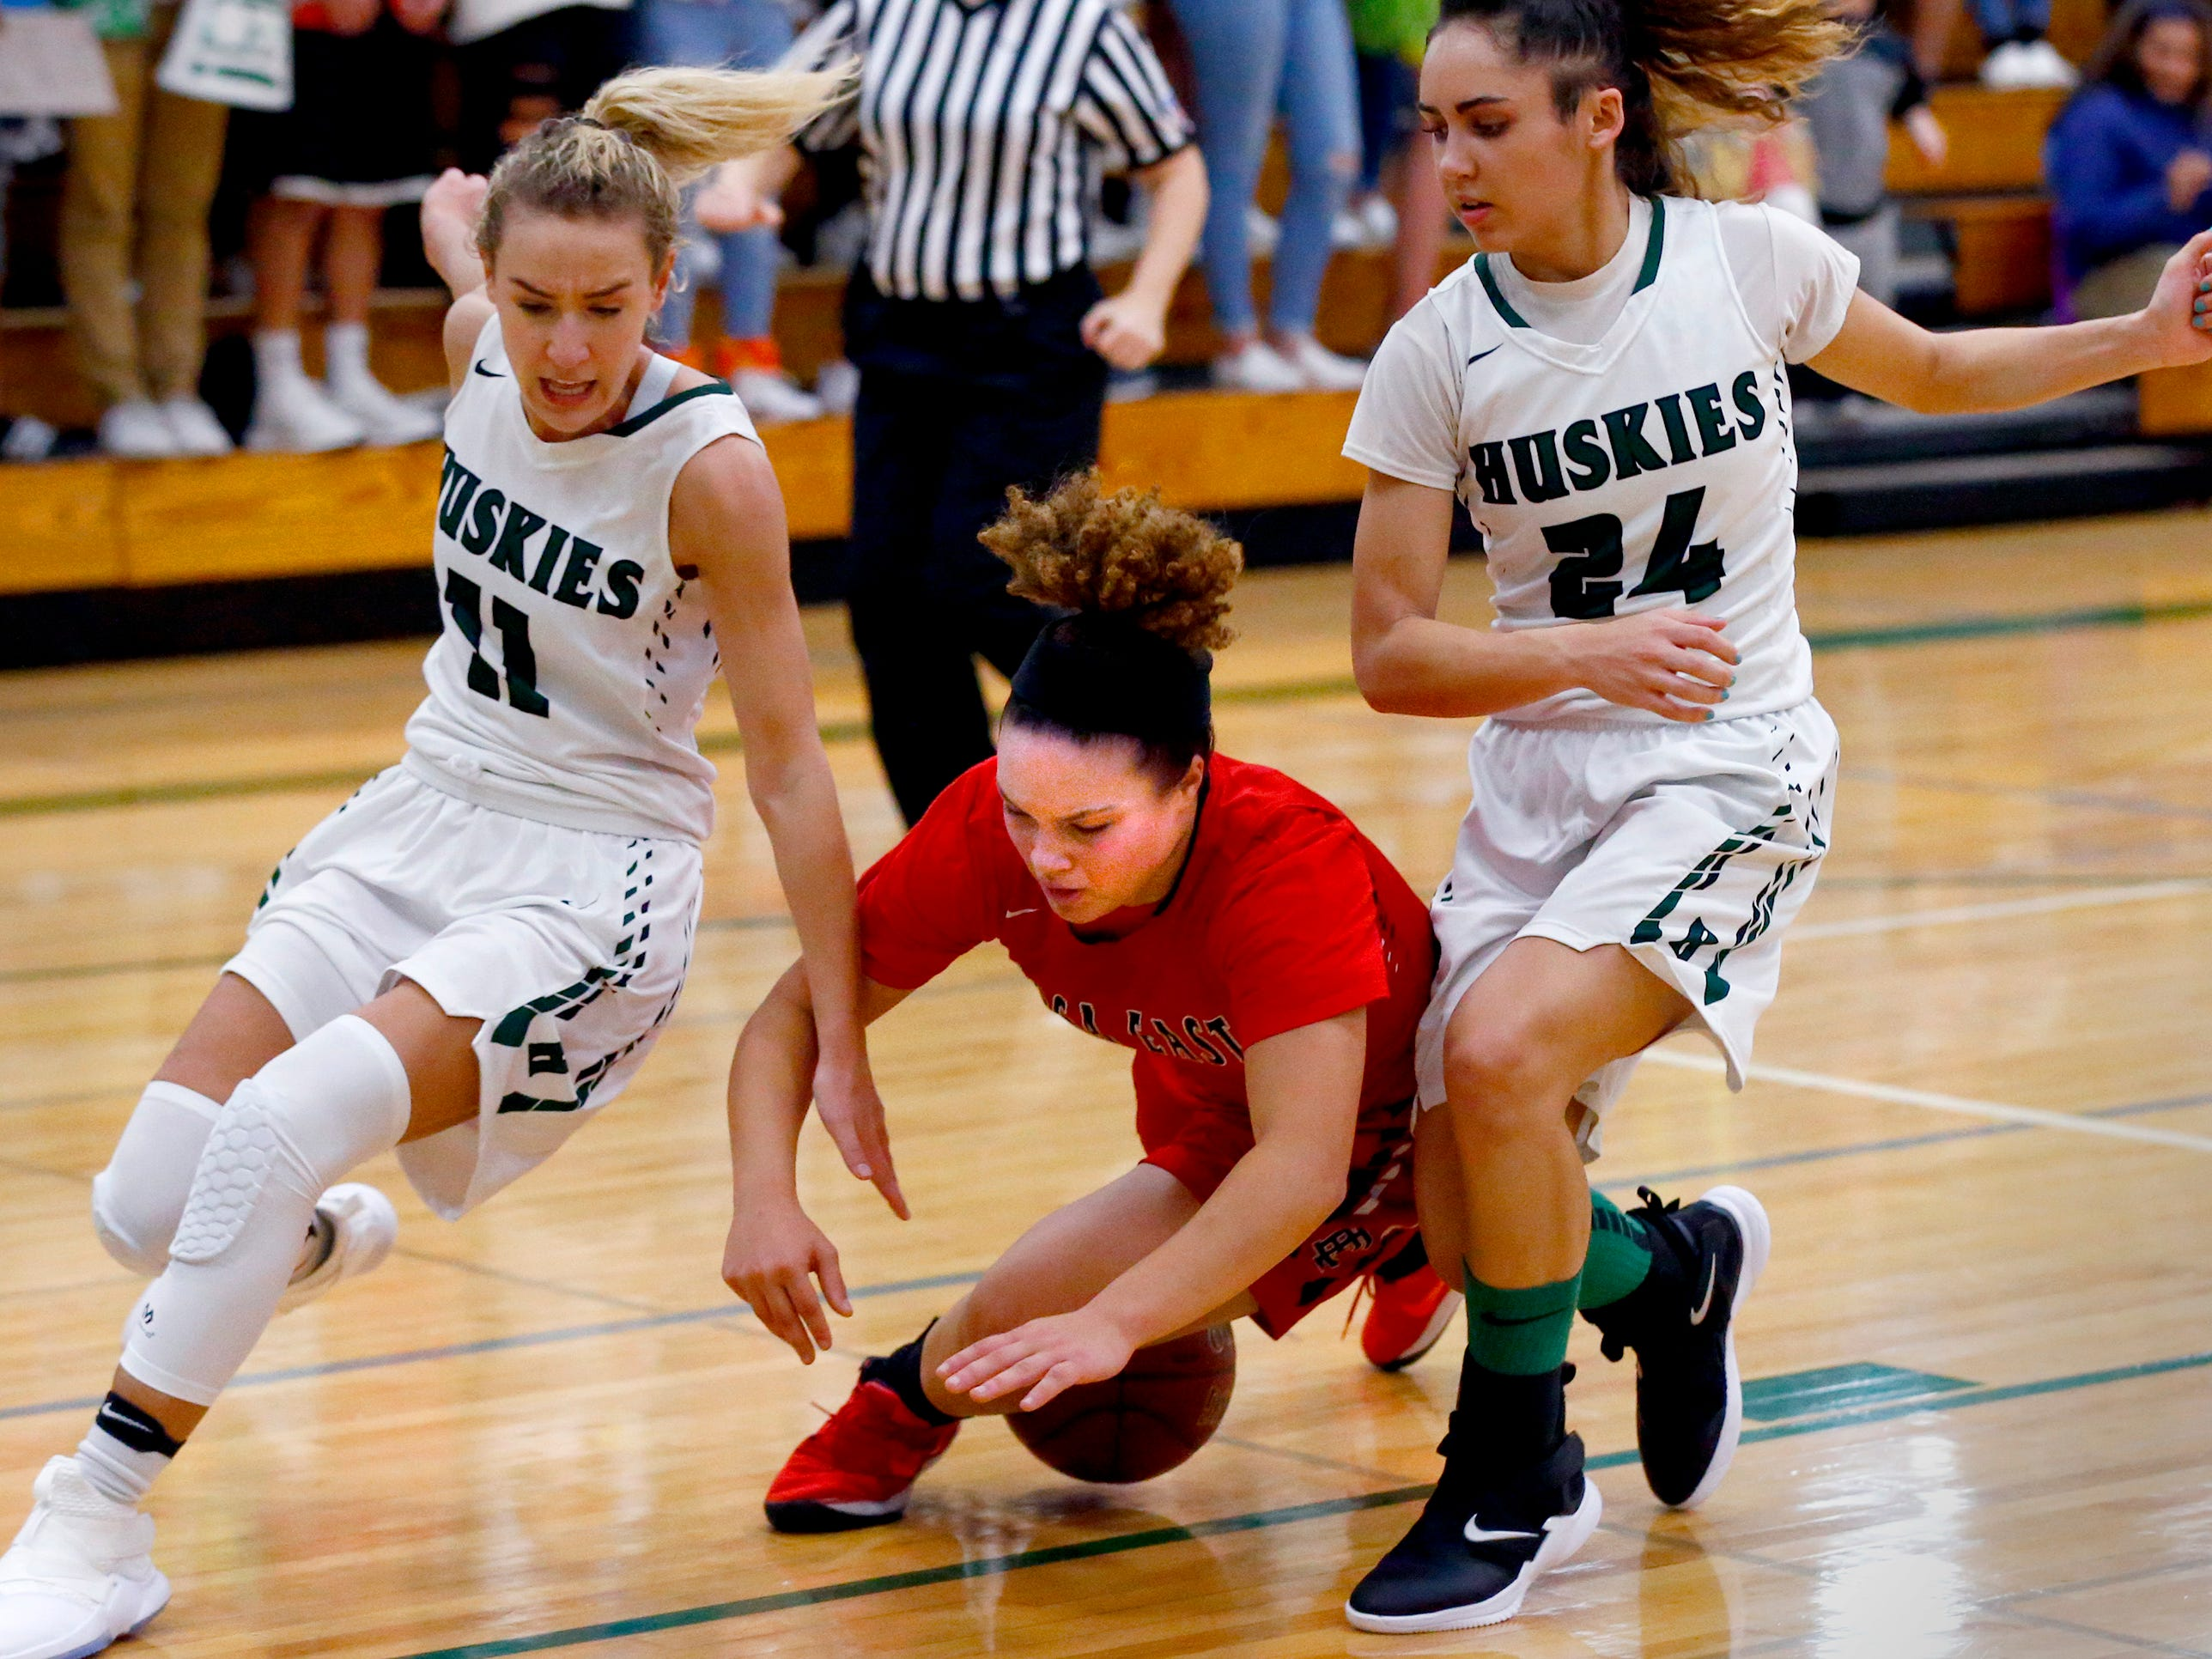 Wauwatosa East's Ashlyn Yow trips up between West Allis Hale's Calie Walk (left) an Natalia Leguizamon at Hale on Nov. 30.